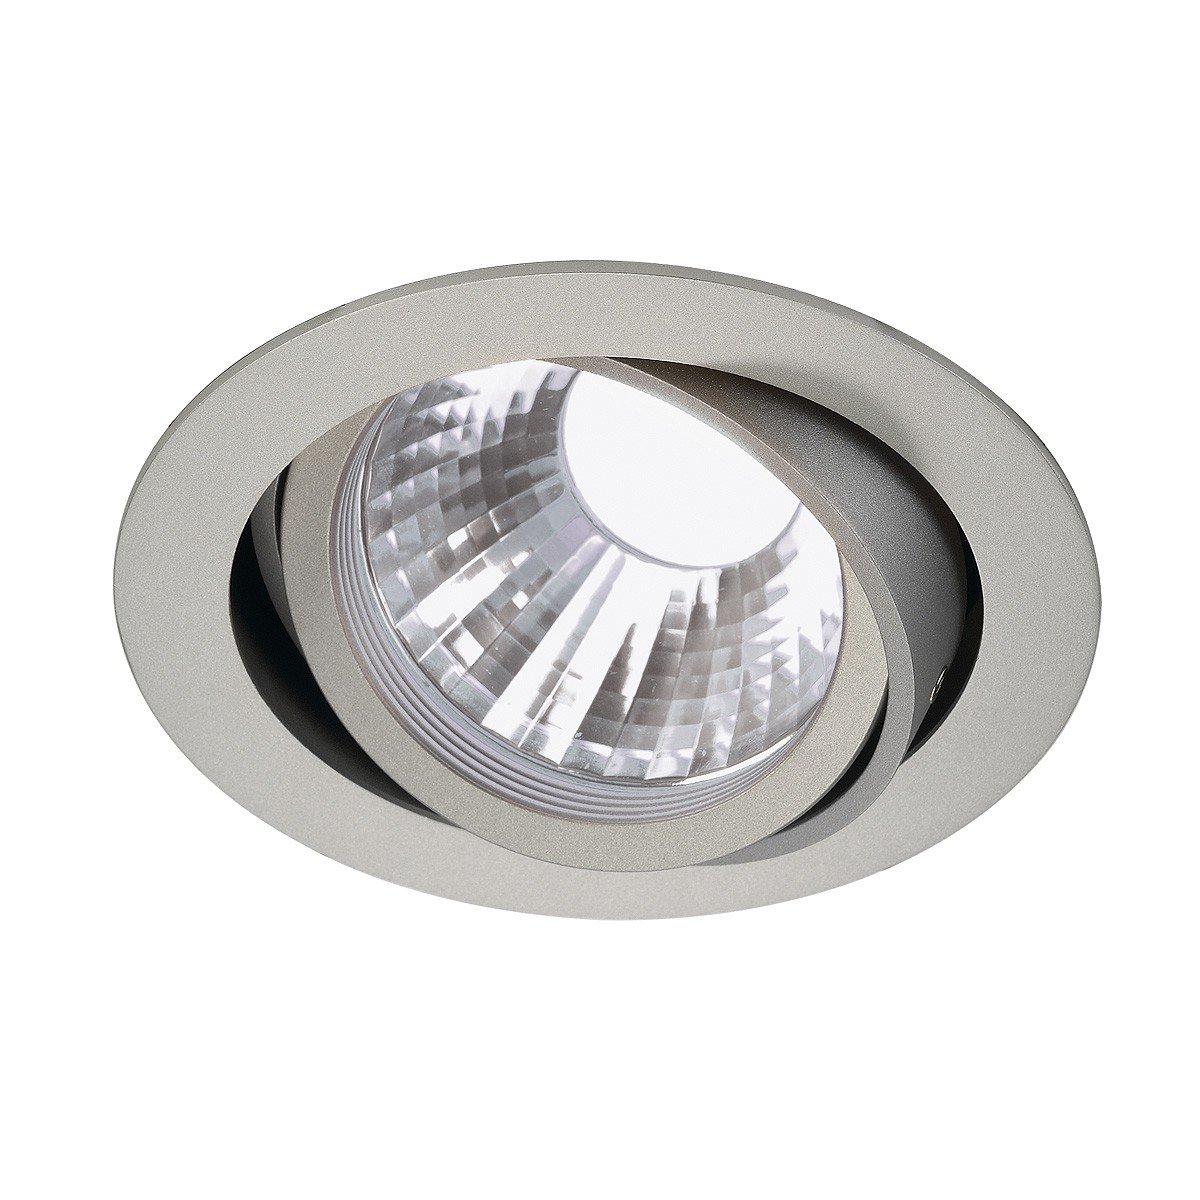 SLV New Tria LED Disk Downlight, Rund, 4000 K, 35 Grad, silbergrau 113564